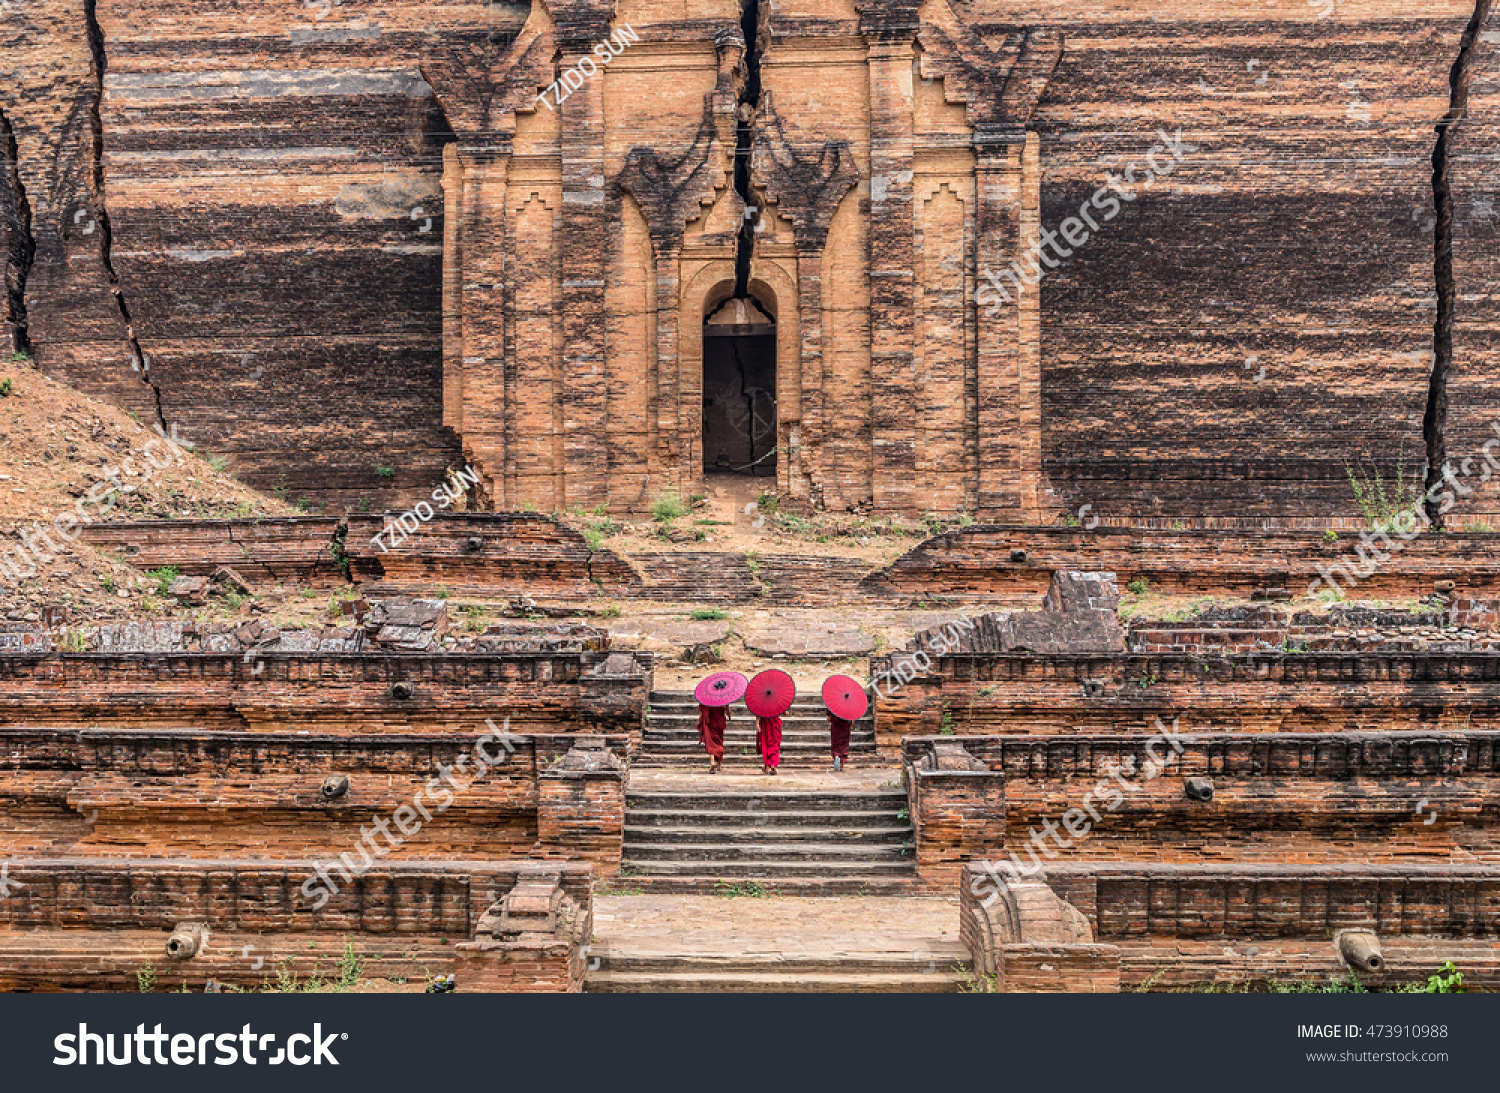 Three Buddhist novice are walking and holding the red umbrella at Mingun Pahtodawgyi bagan mandalay myanmar public domain